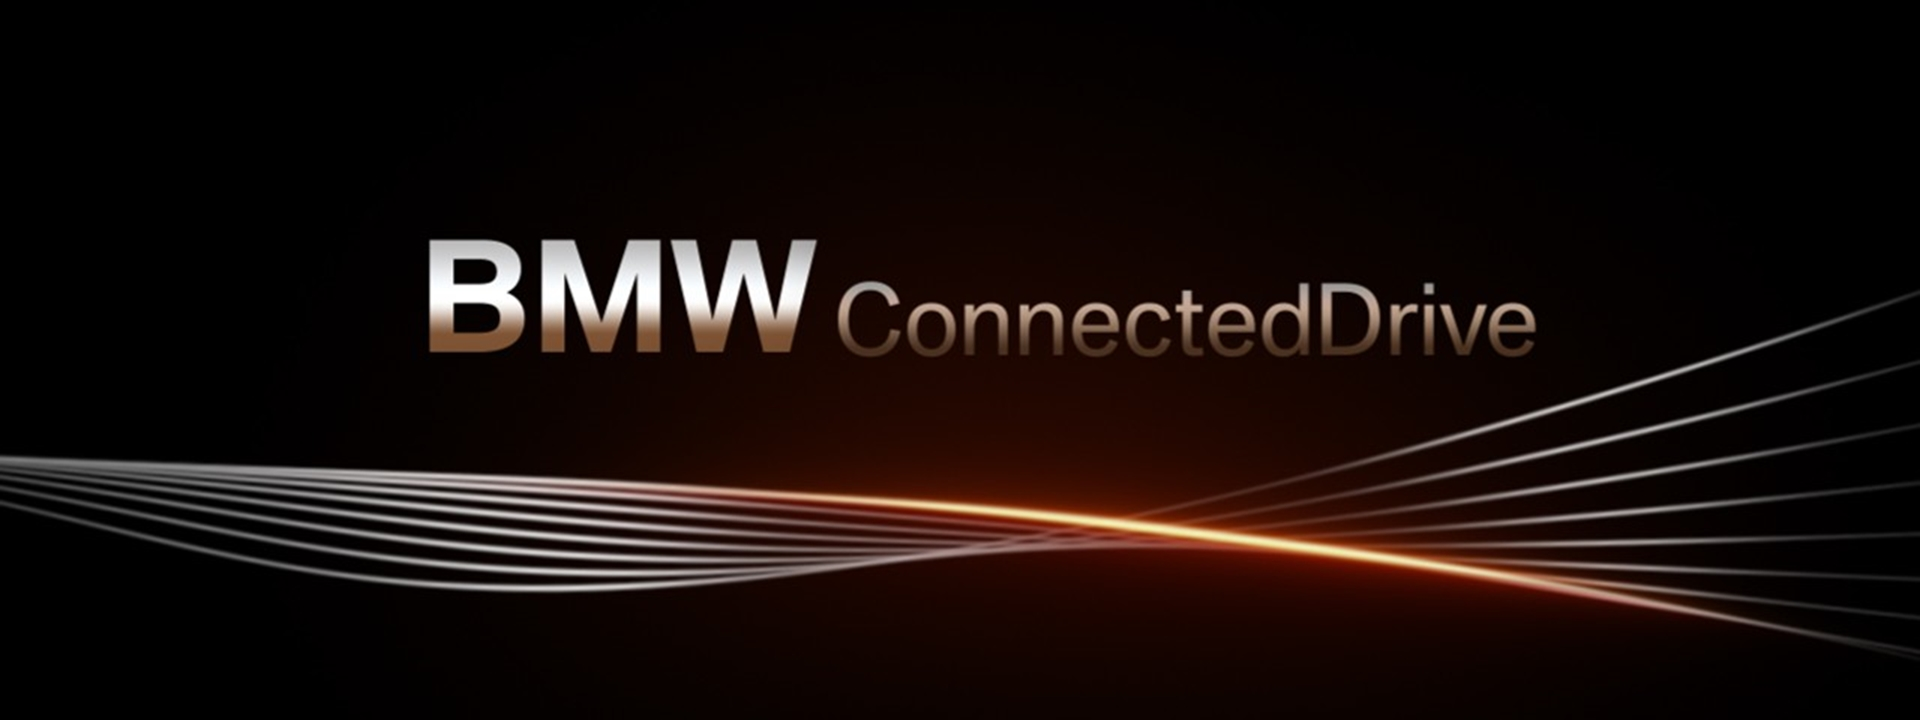 BMW ConnectedDrive Logo